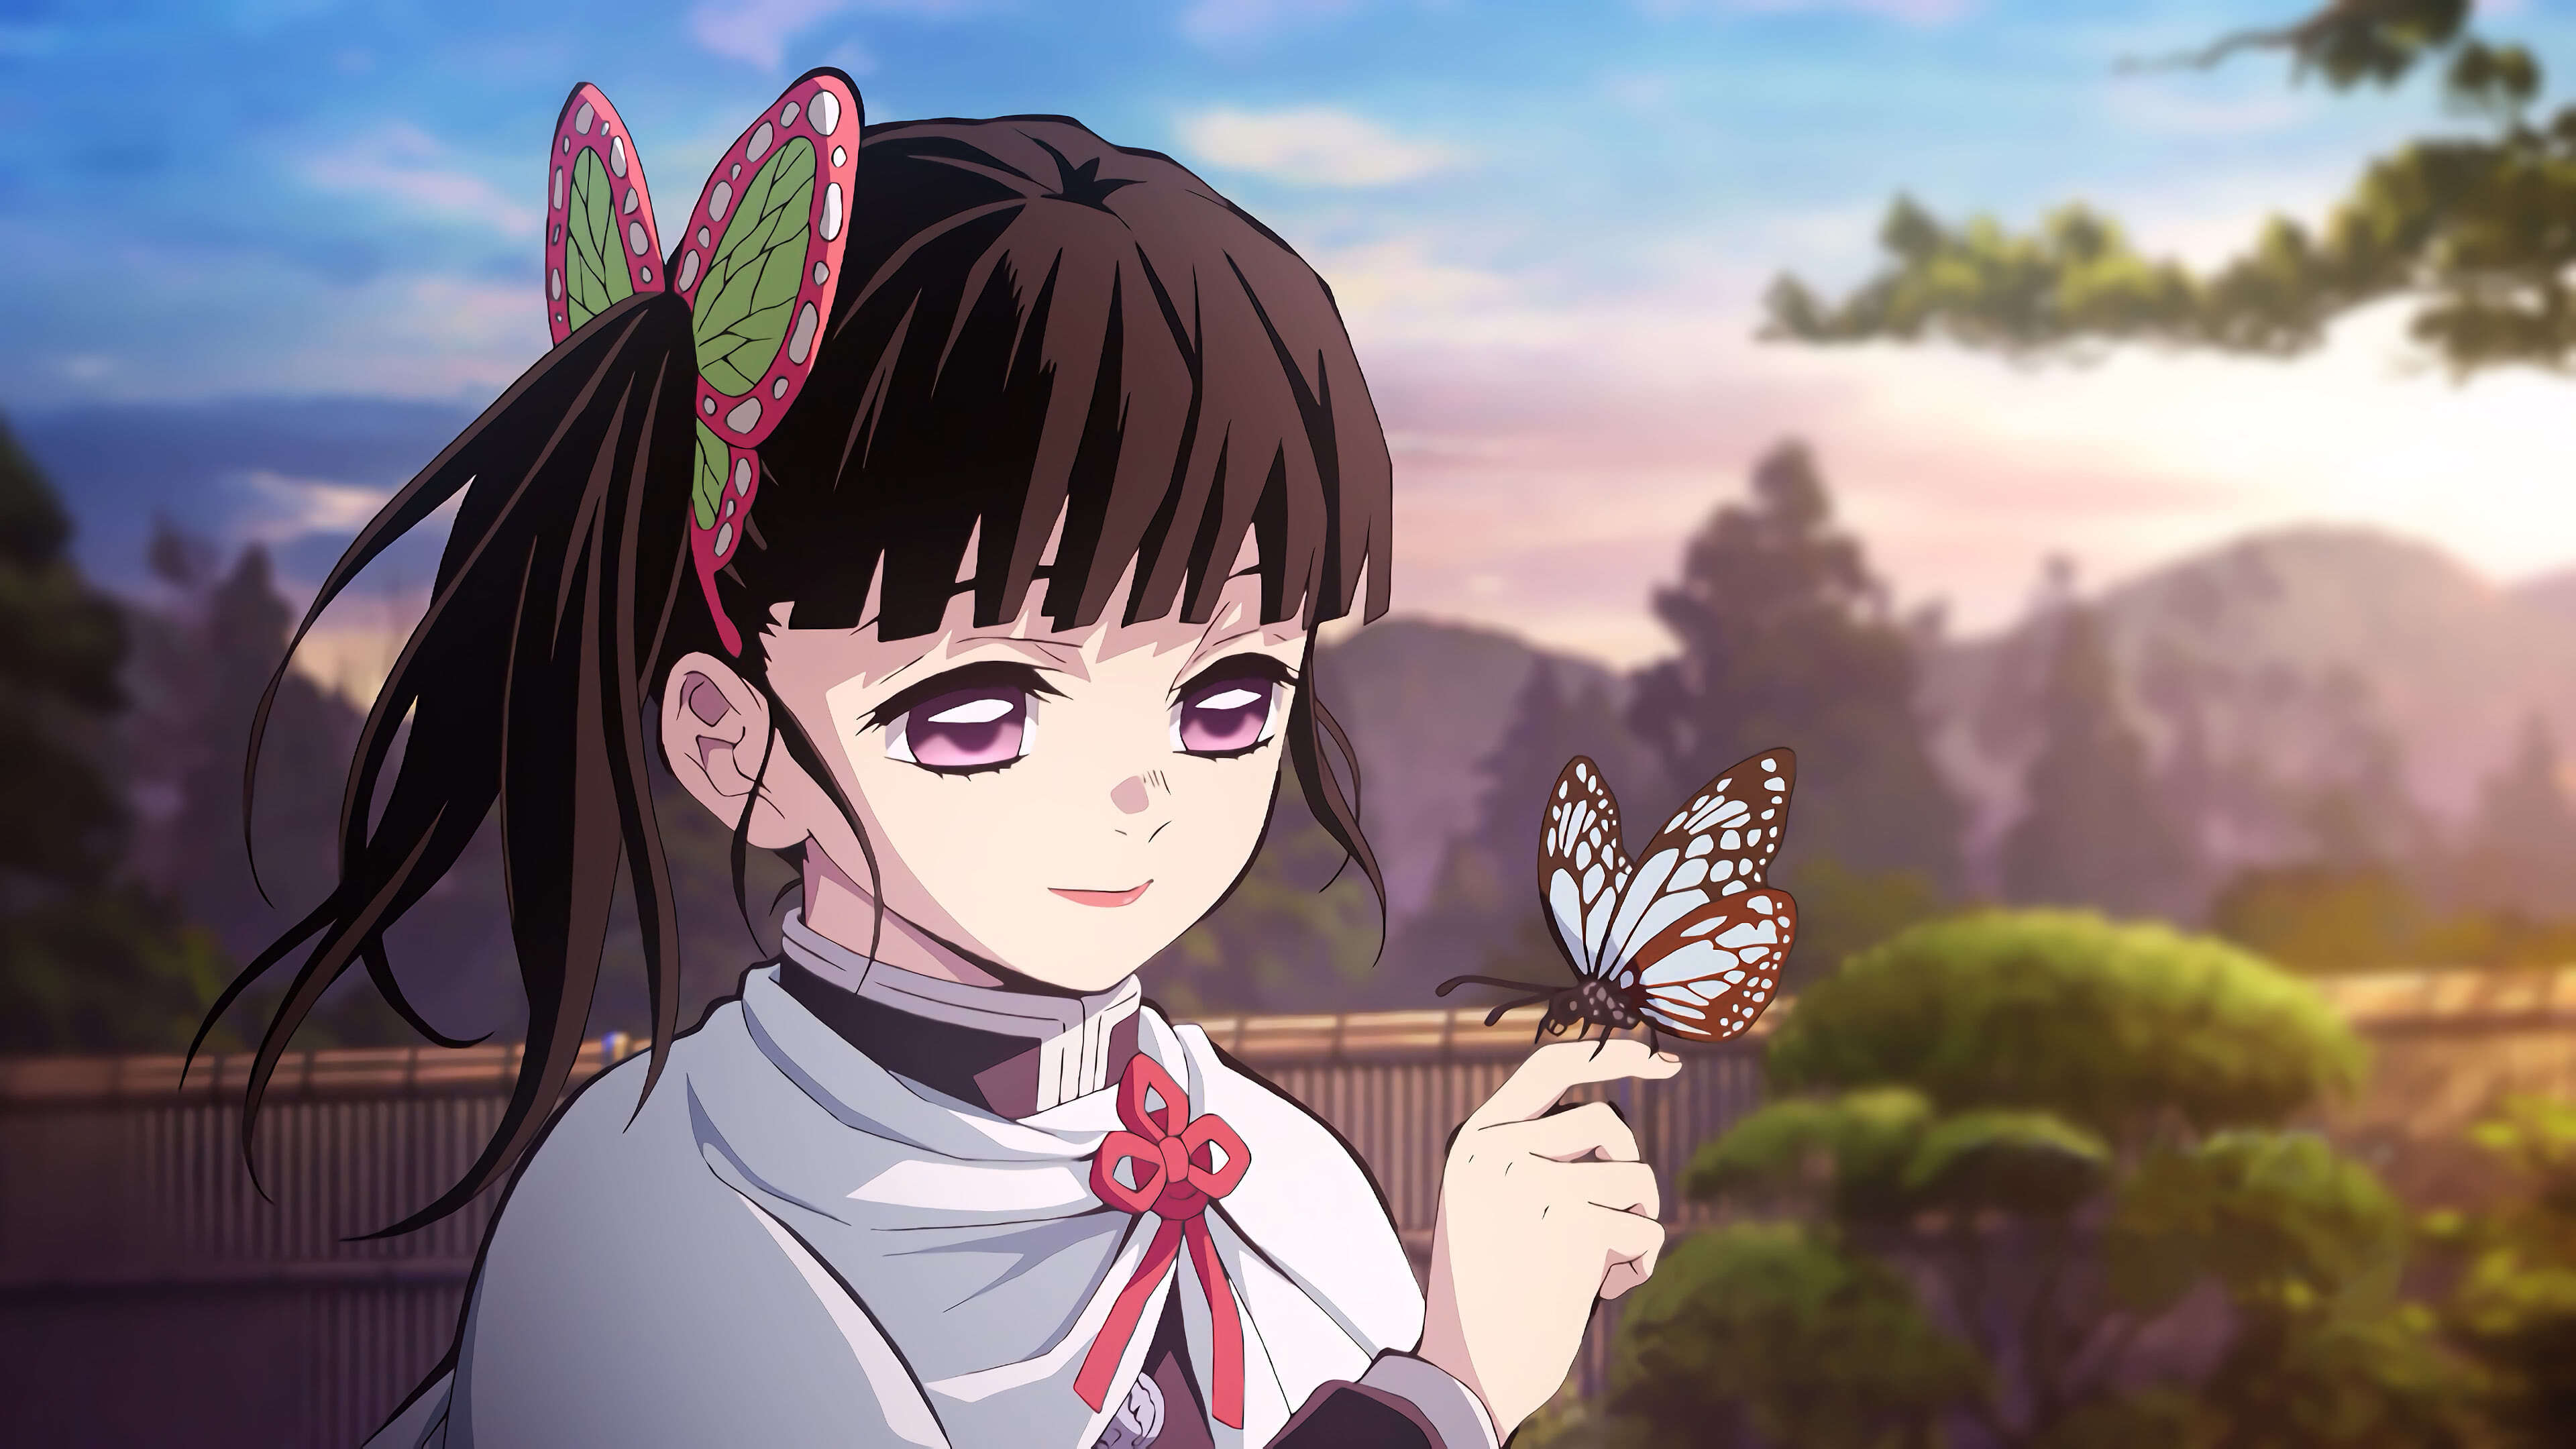 kimetsu no yaiba shinobu kocho butterfly uhd 4k wallpaper